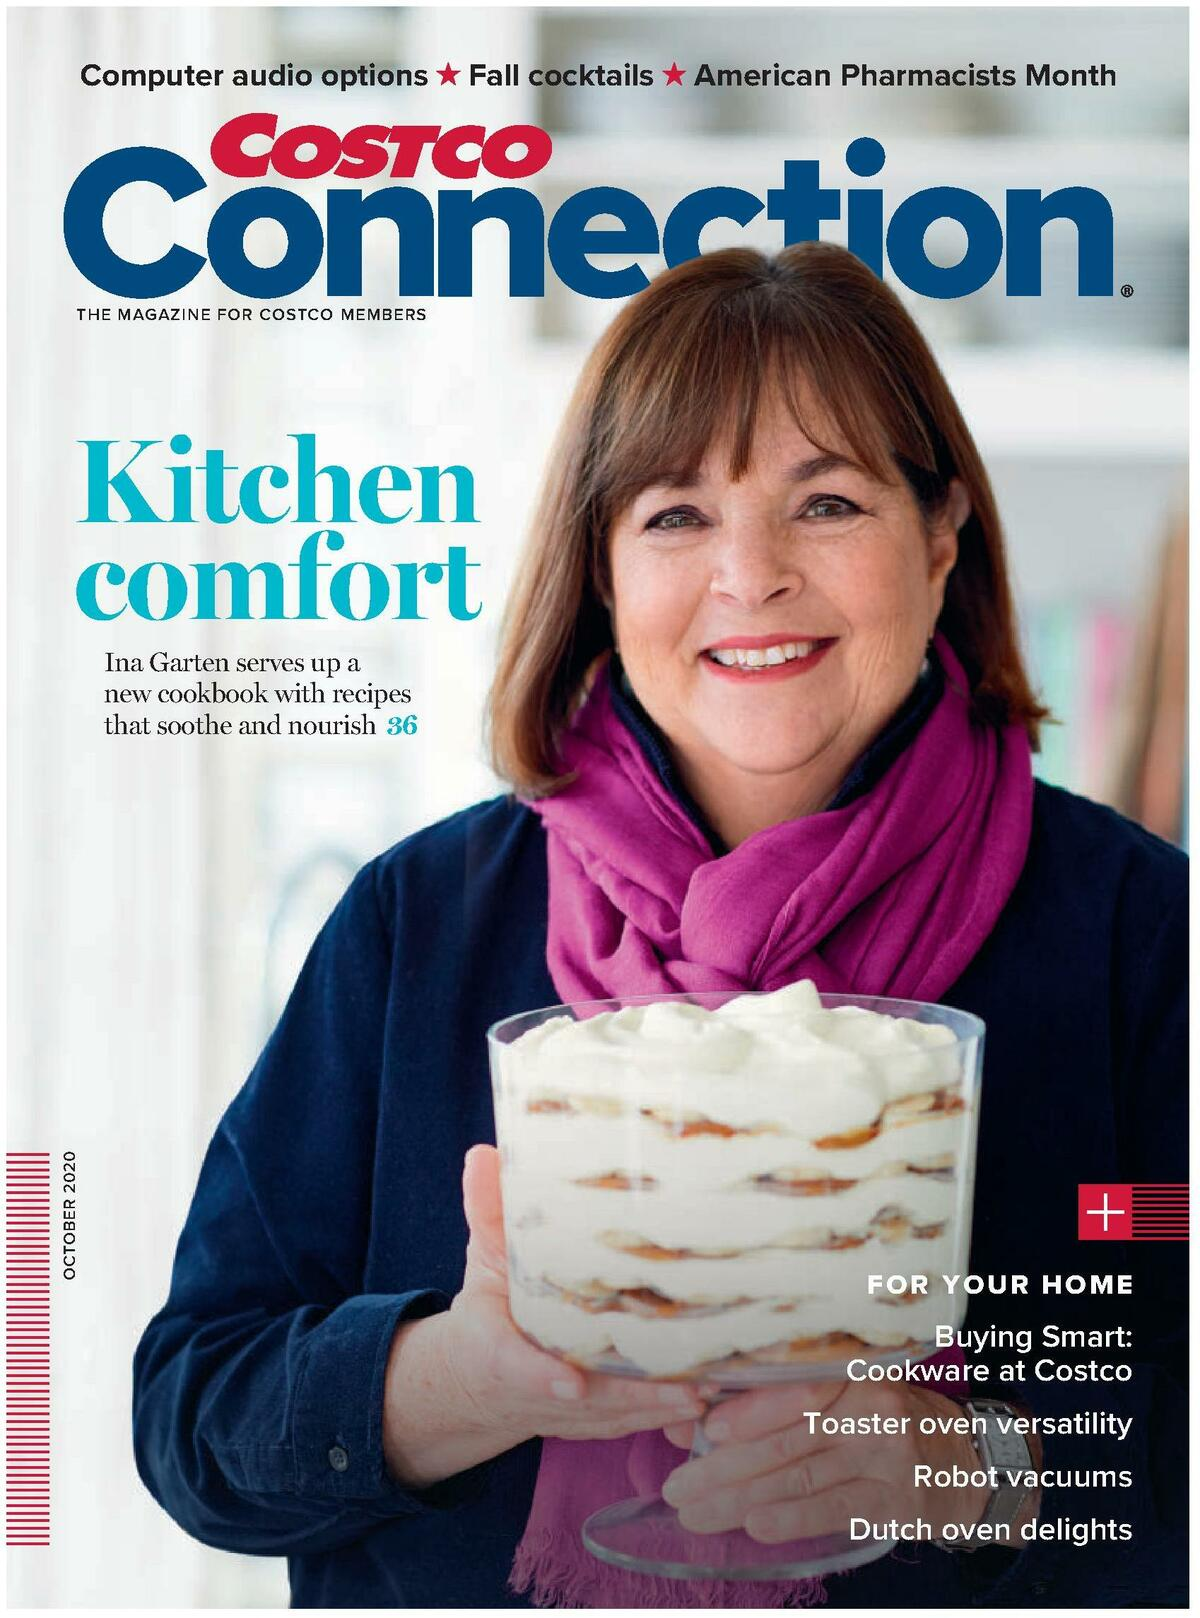 Costco Connection October Weekly Ad from October 1